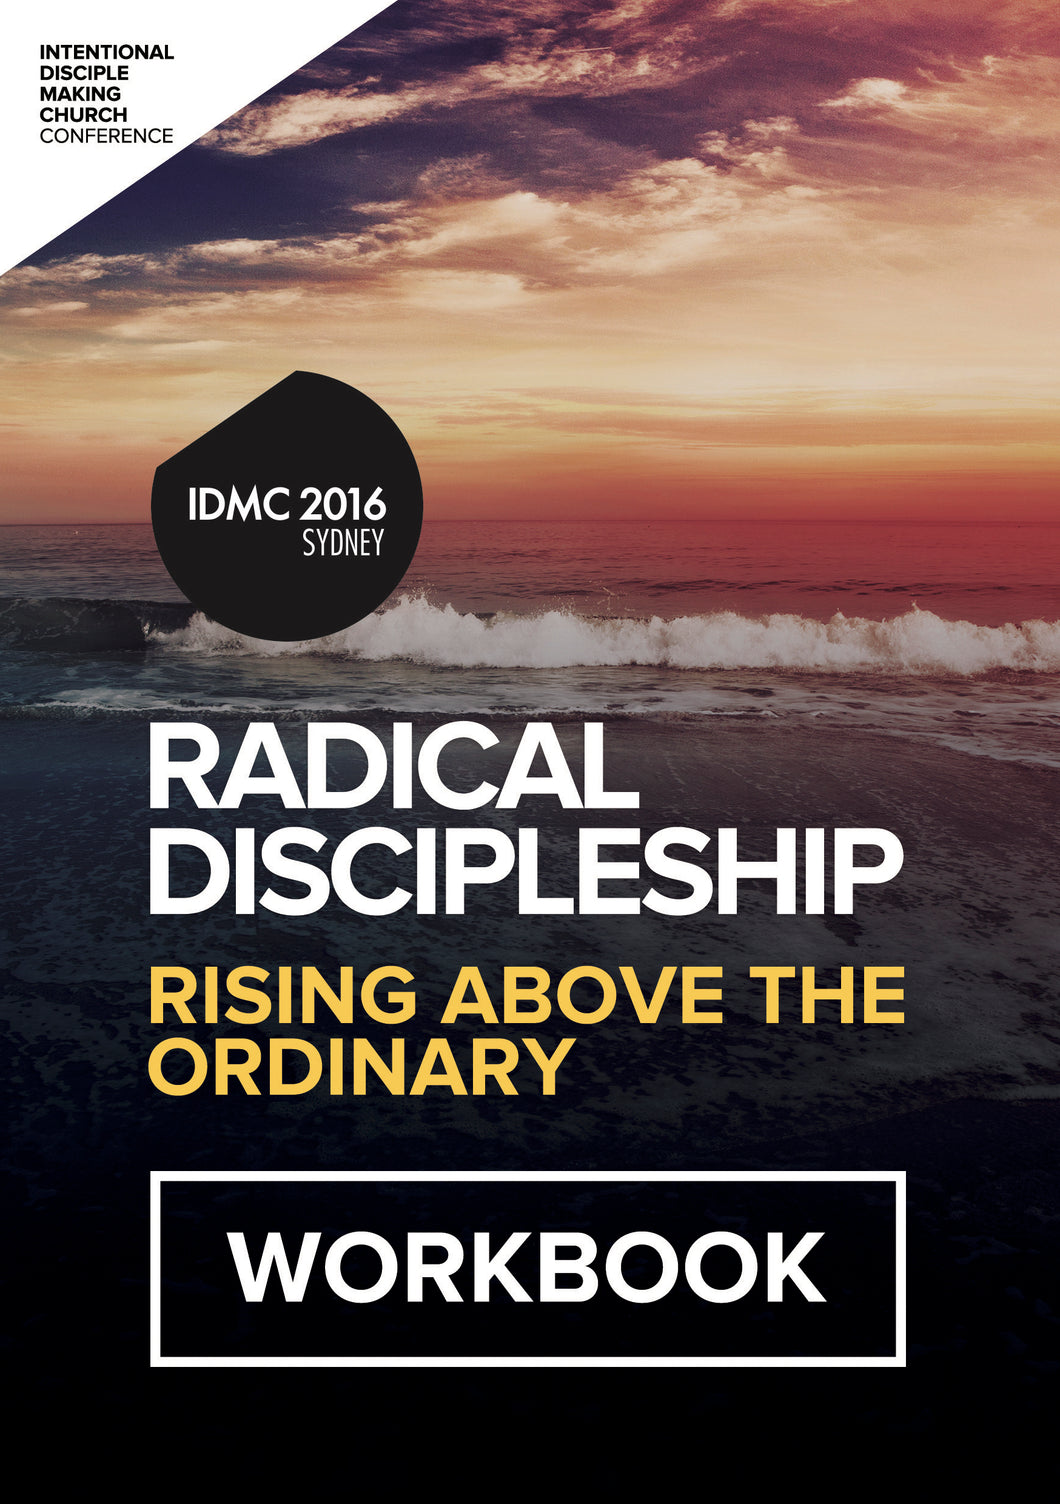 2016 IDMC Conference: Radical Discipleship Workbook